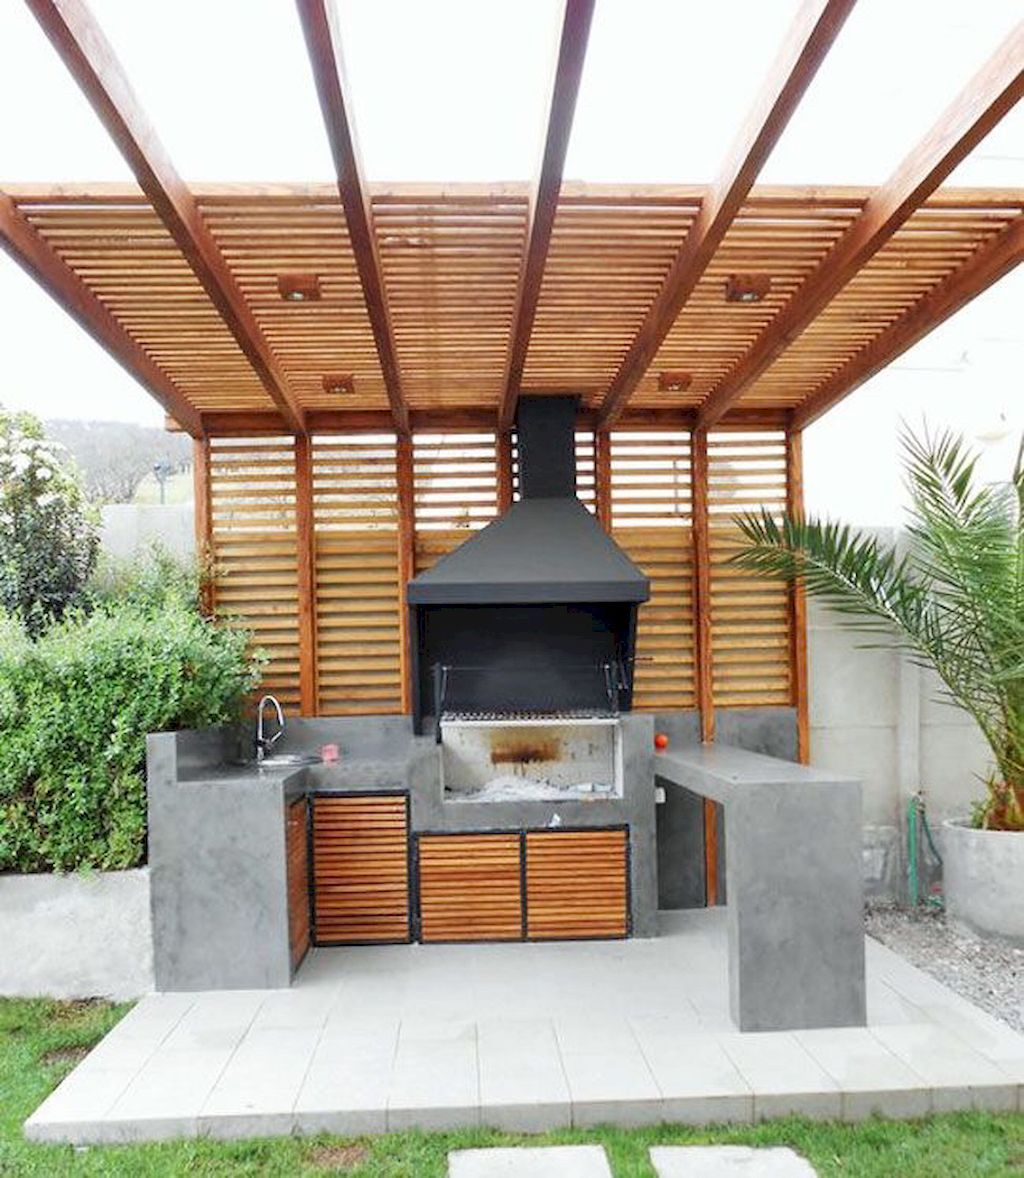 60 smart ideas for outdoor kitchens 50 modern outdoor kitchen outdoor kitchen design bbq on outdoor kitchen bbq id=22483